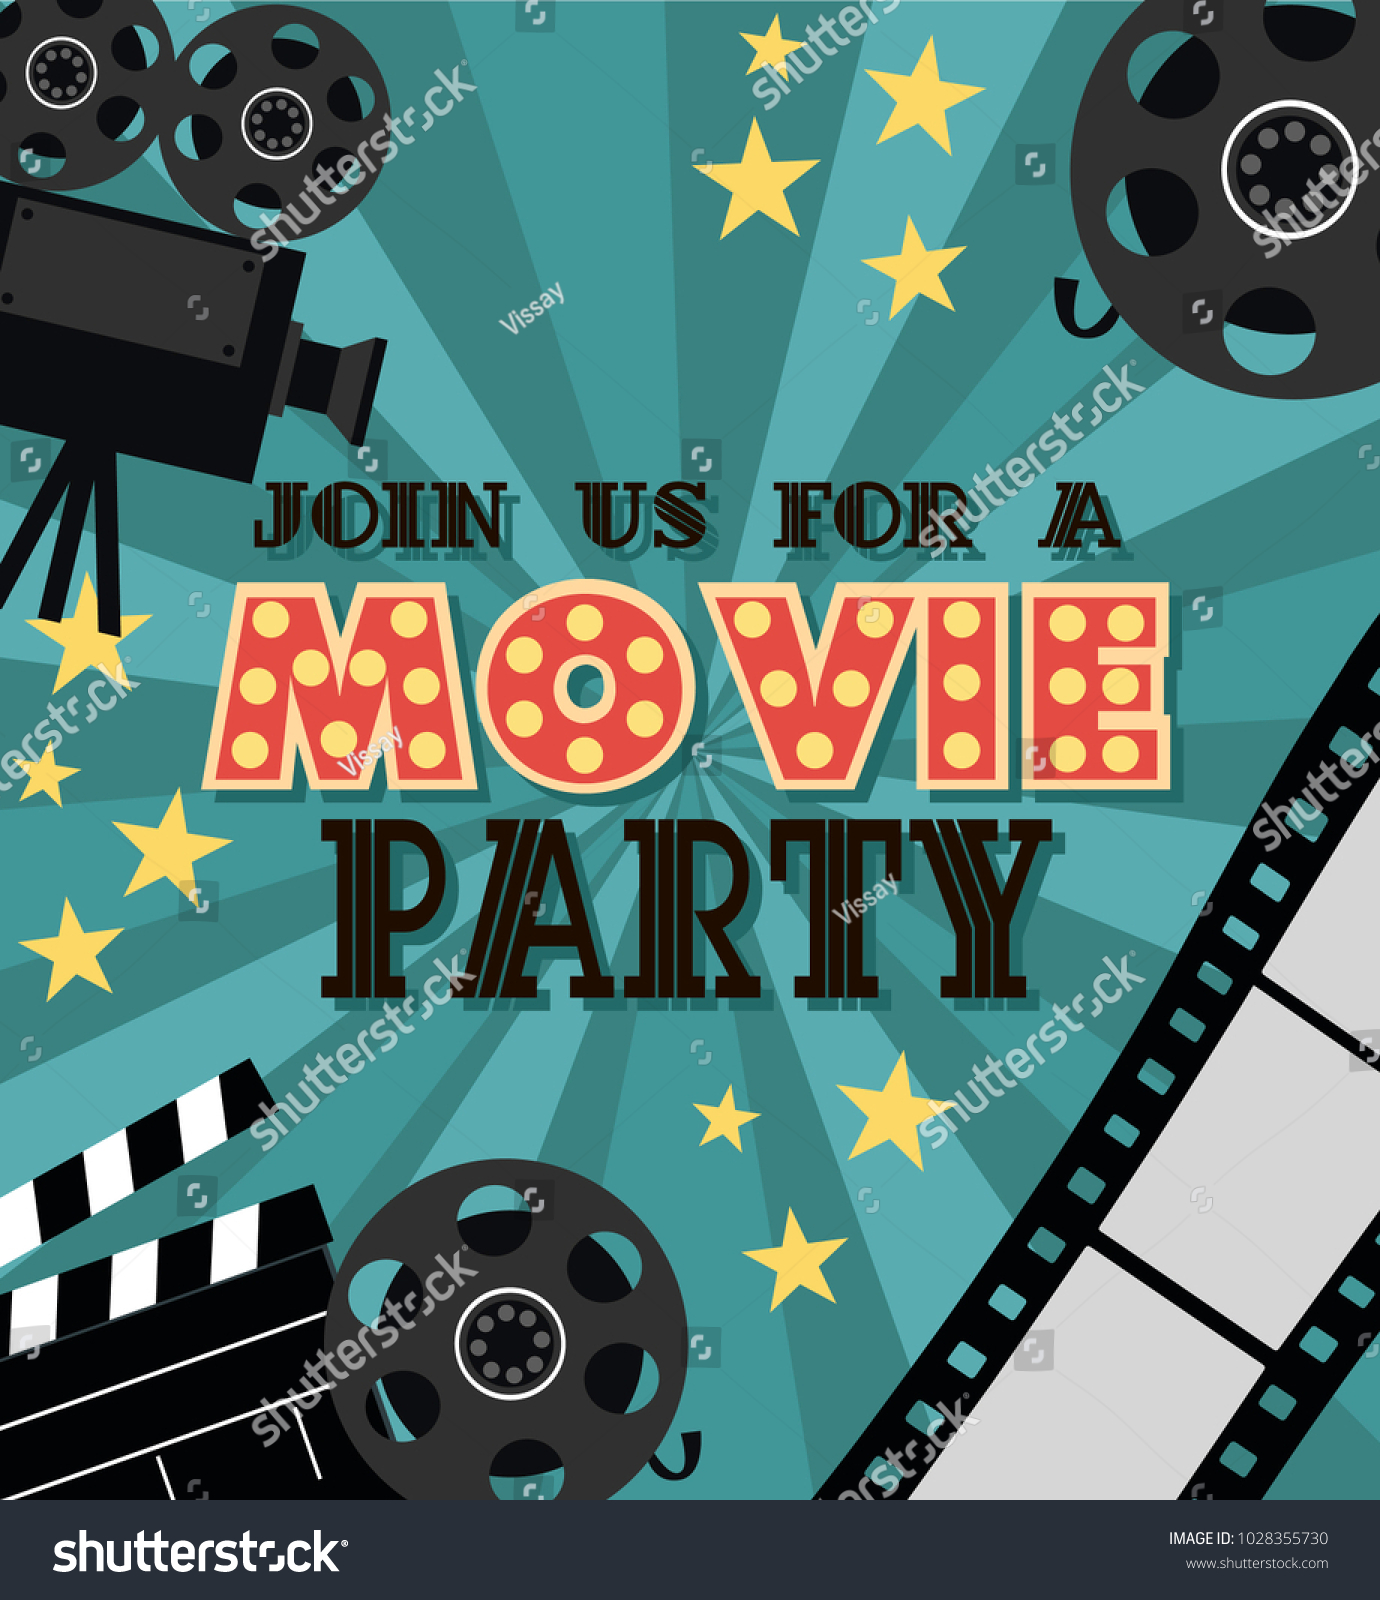 Invitation movie party hollywood party poster stock vector hd invitation for movie party hollywood party poster cinema poster vector illustration stopboris Gallery